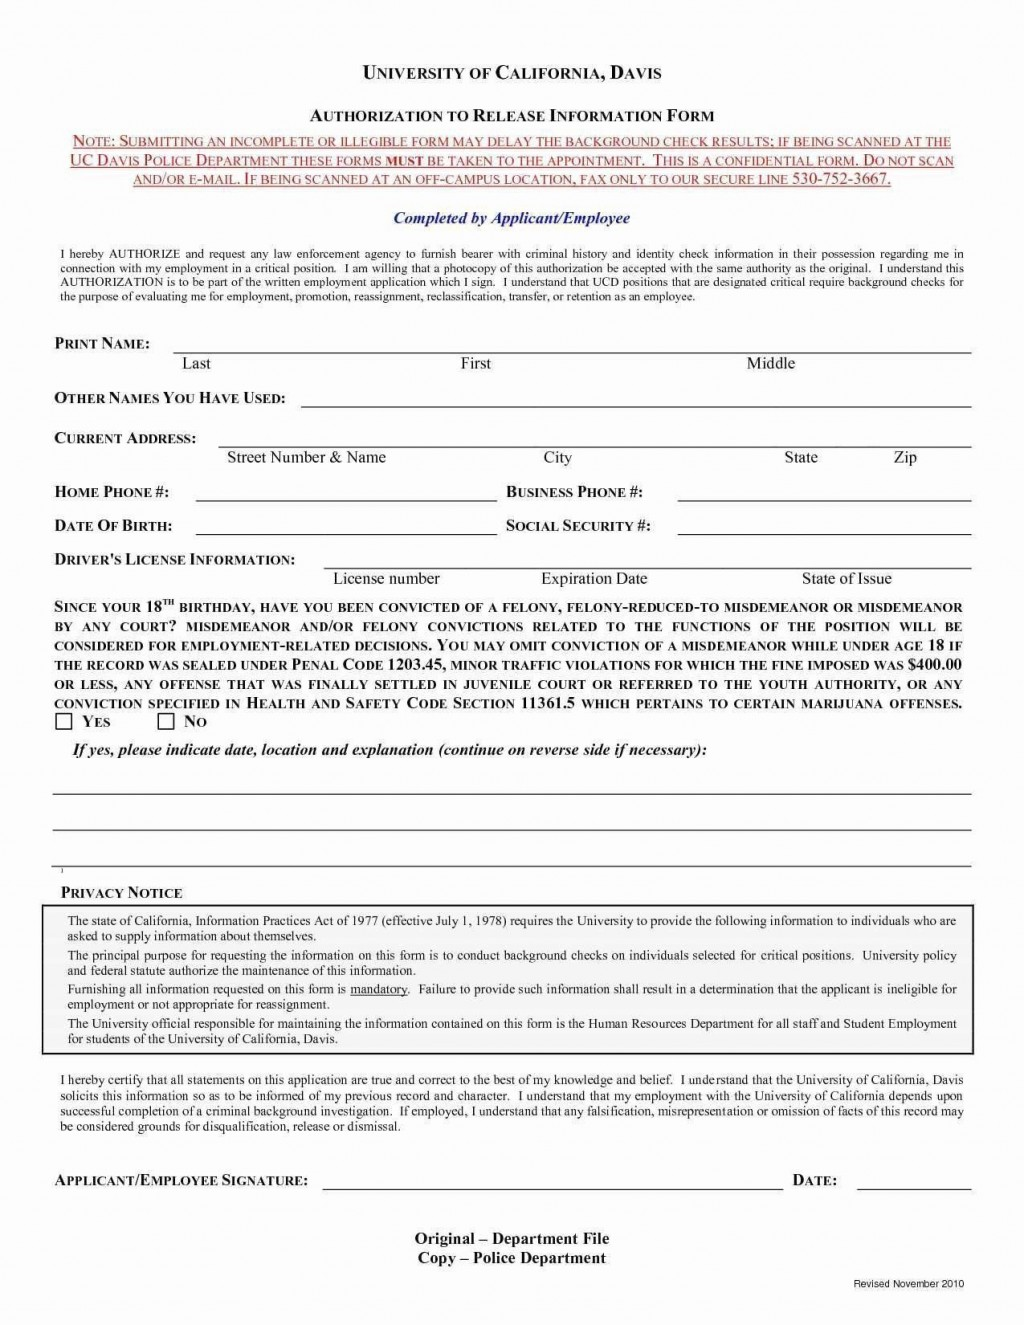 006 Sensational Background Check Form Template Free Concept  AuthorizationLarge